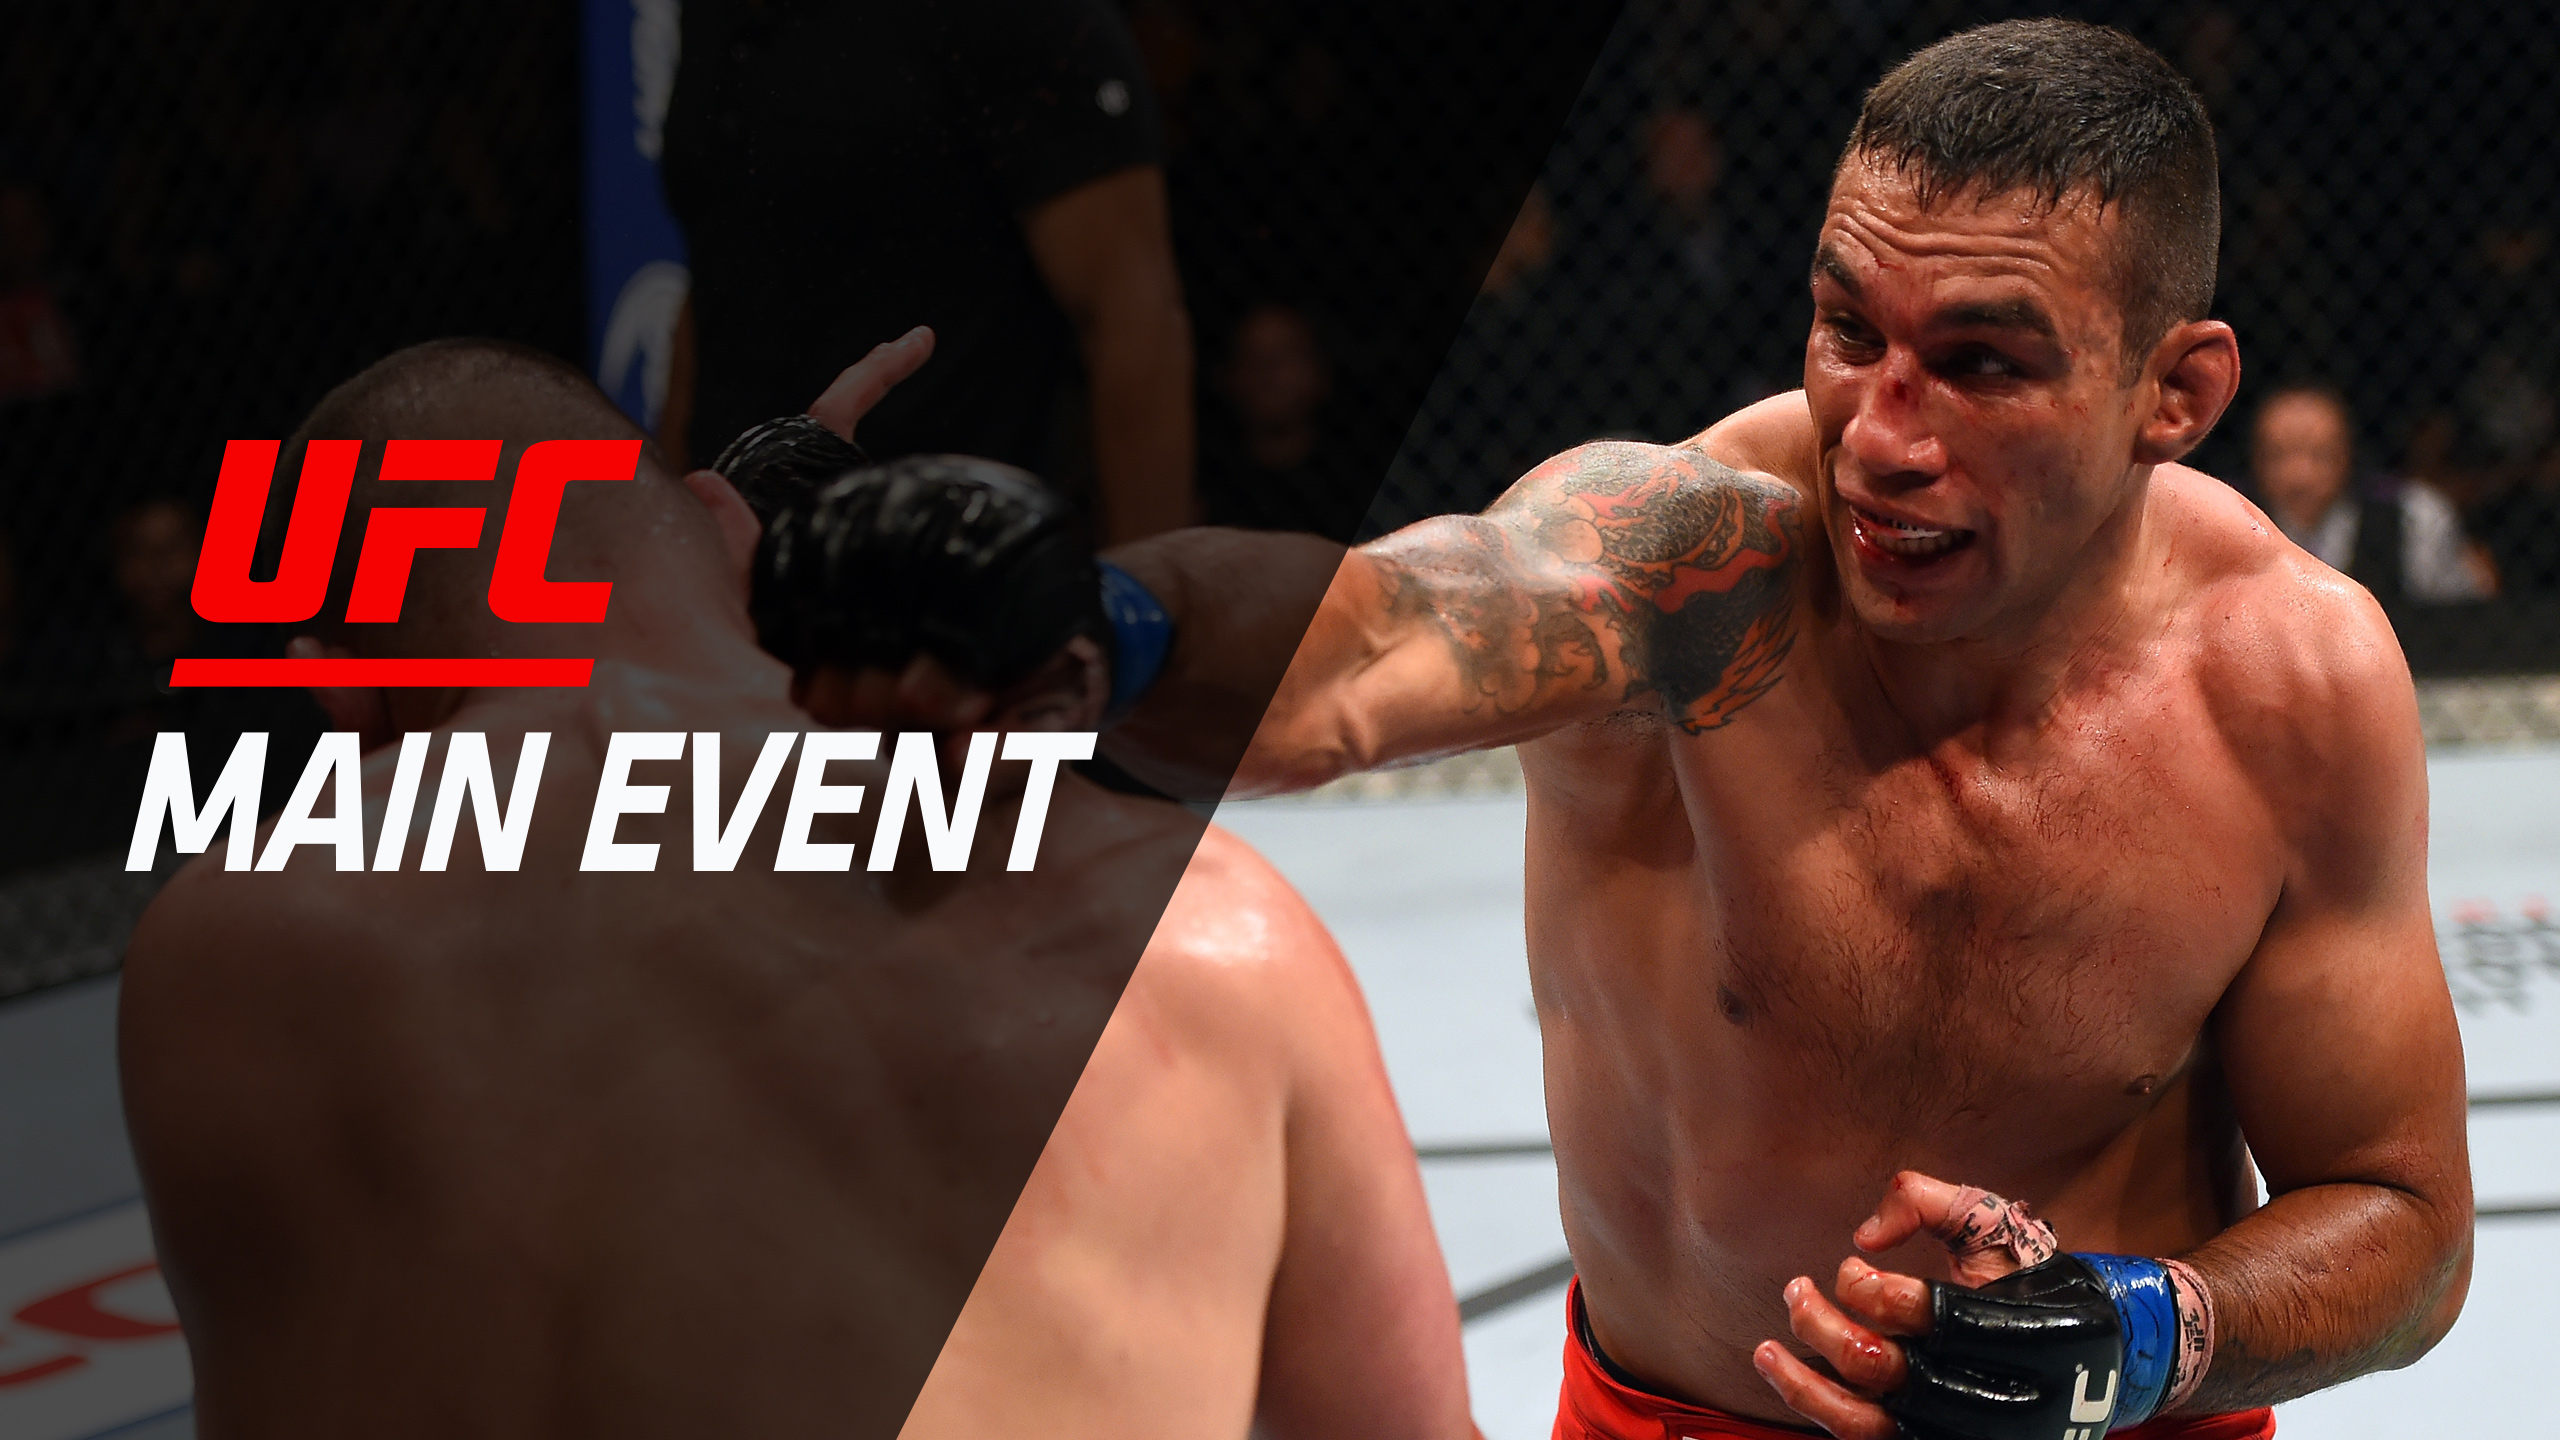 UFC Main Event: Velasquez vs. Werdum